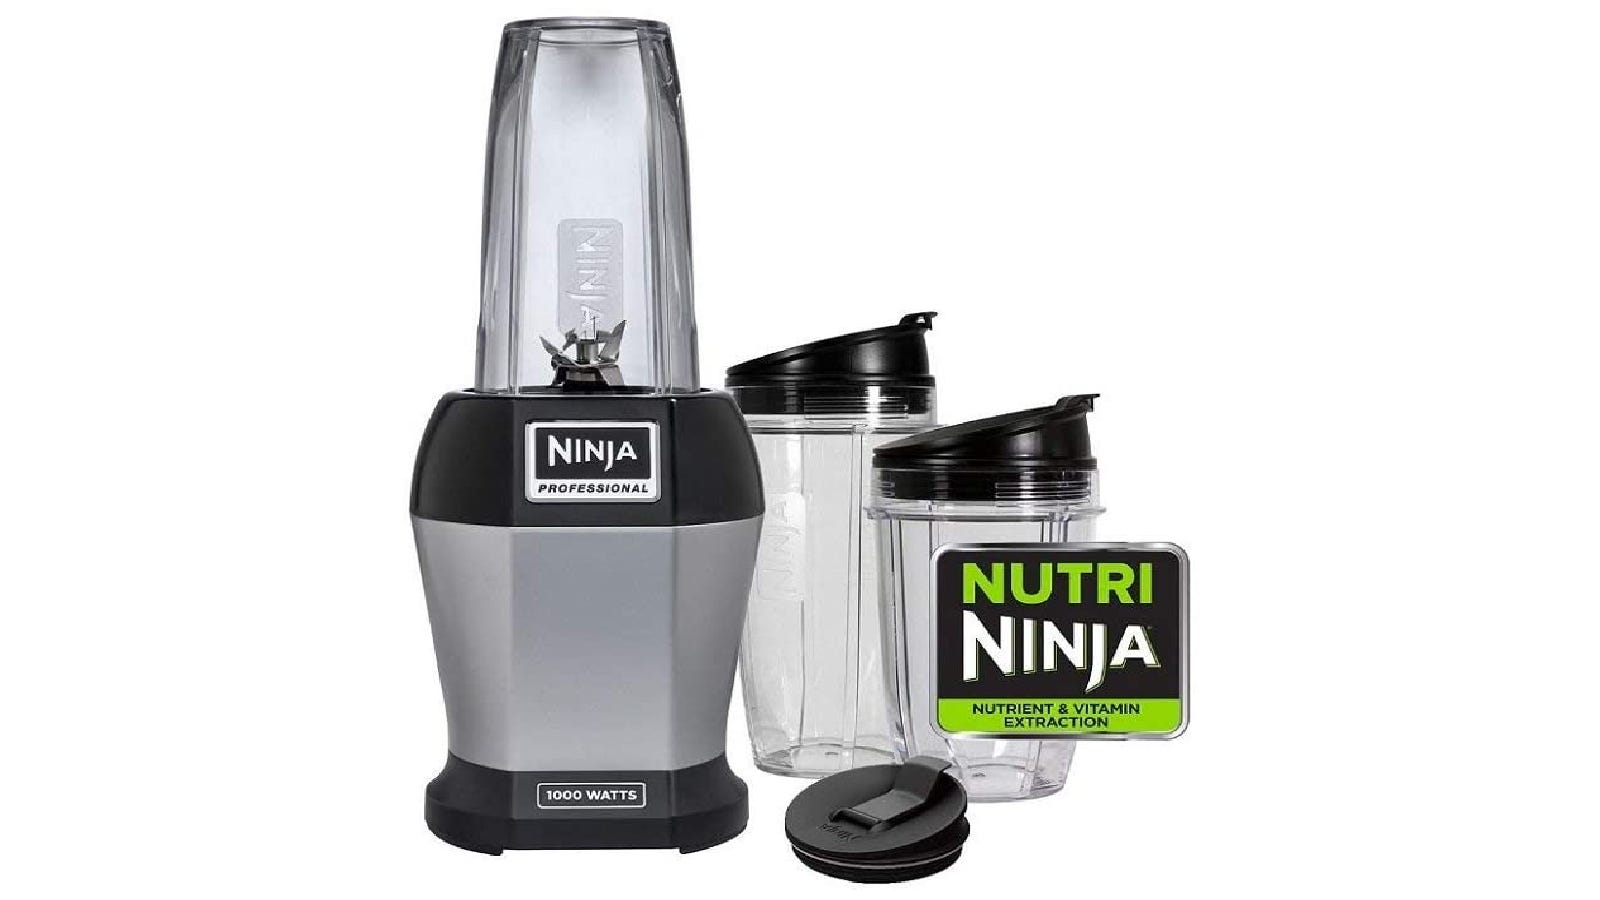 """a personal blender with a gray base and a clear blender cup; to the right is another two blender cups and a label with the text """"Nutri Ninja"""""""